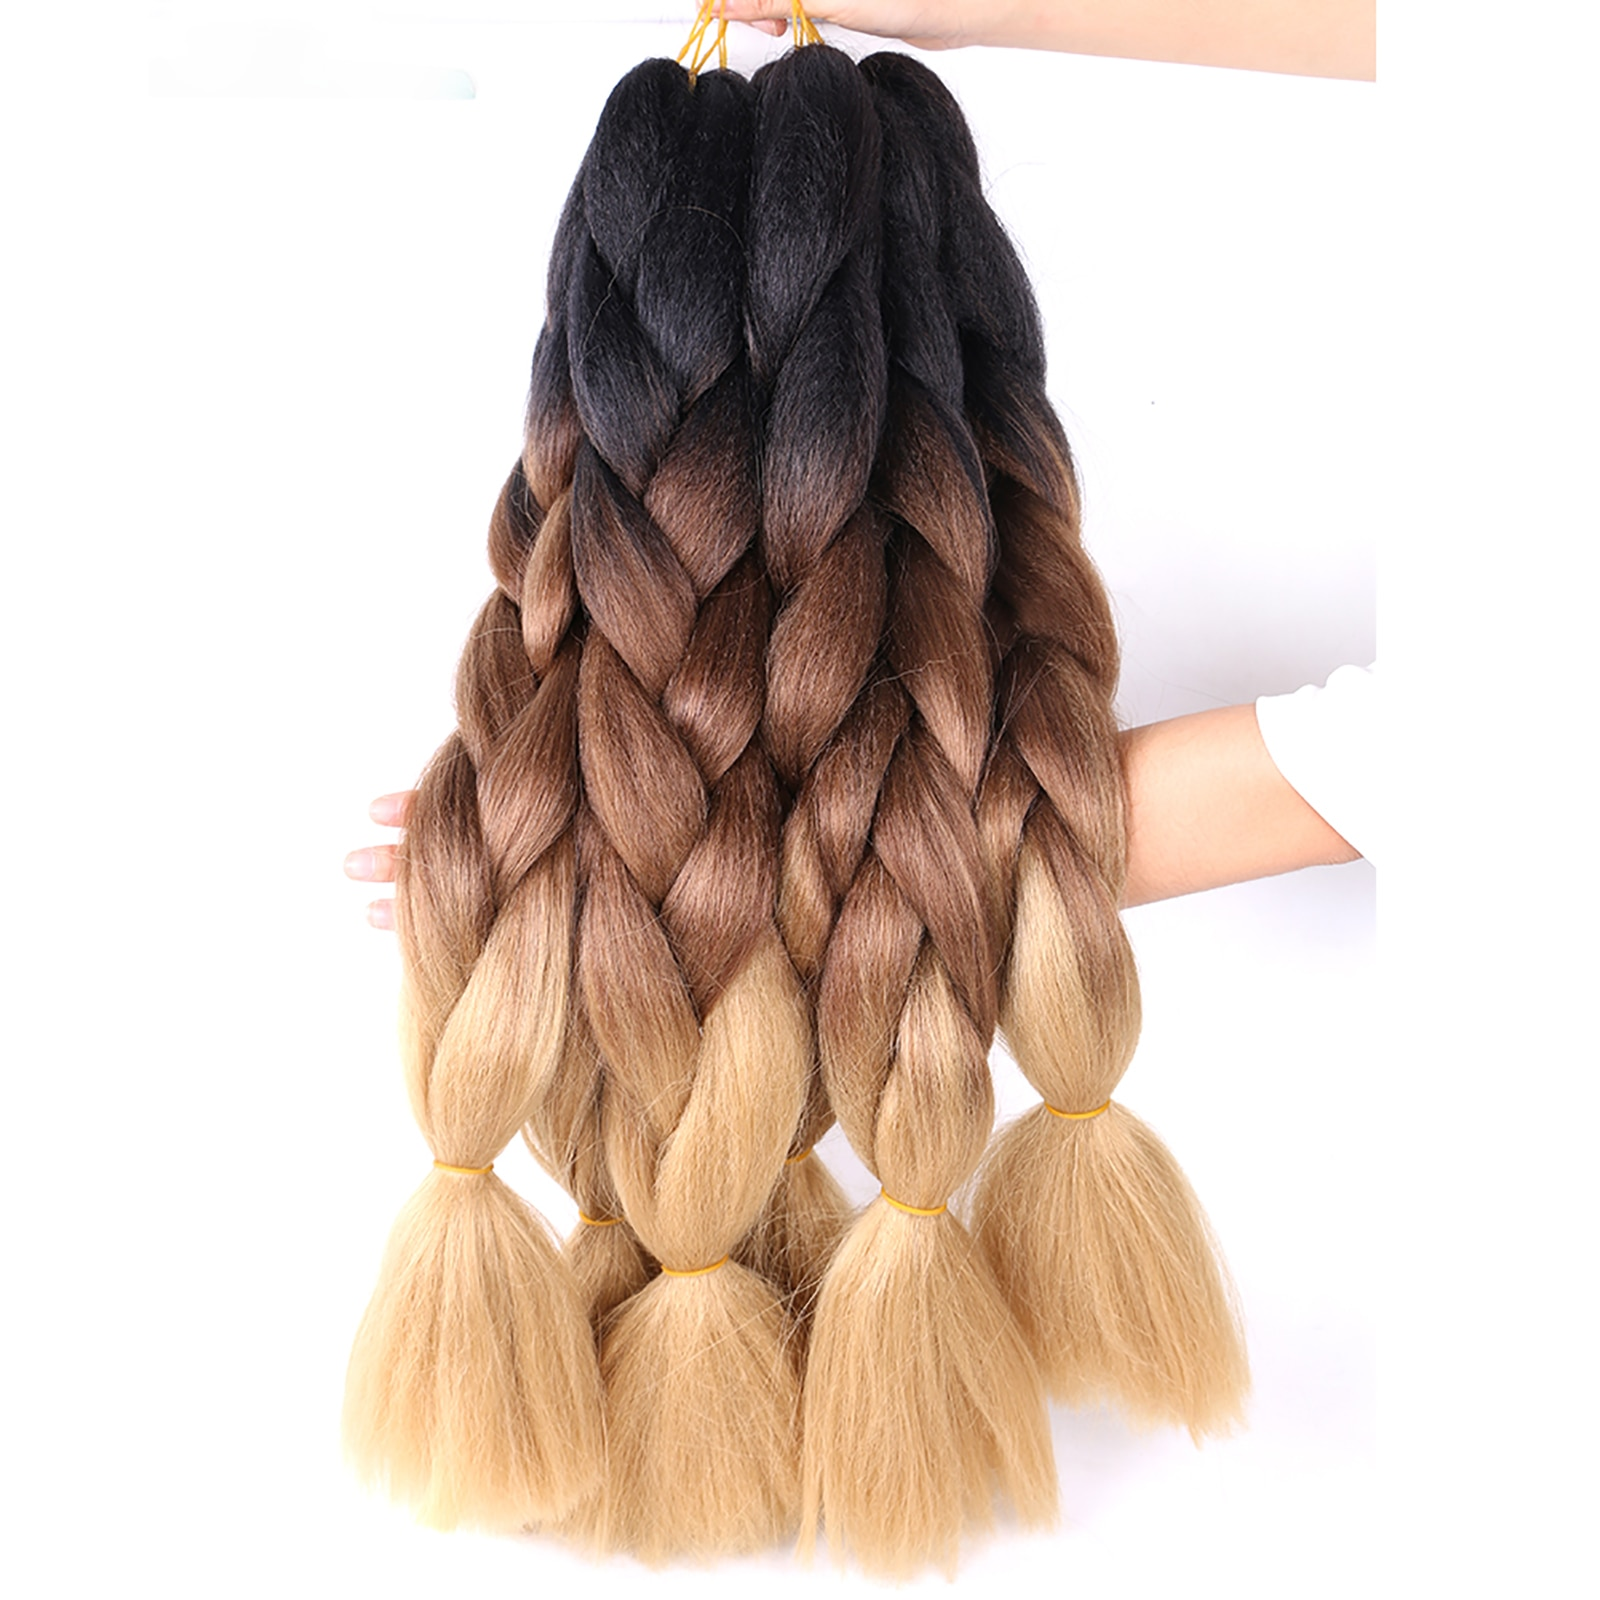 Jumbo Braiding Hair Extensions Kanekalon Braiding Hair 24 Inch Ombre Multiple Tone Colored Synthetic Hair for Women